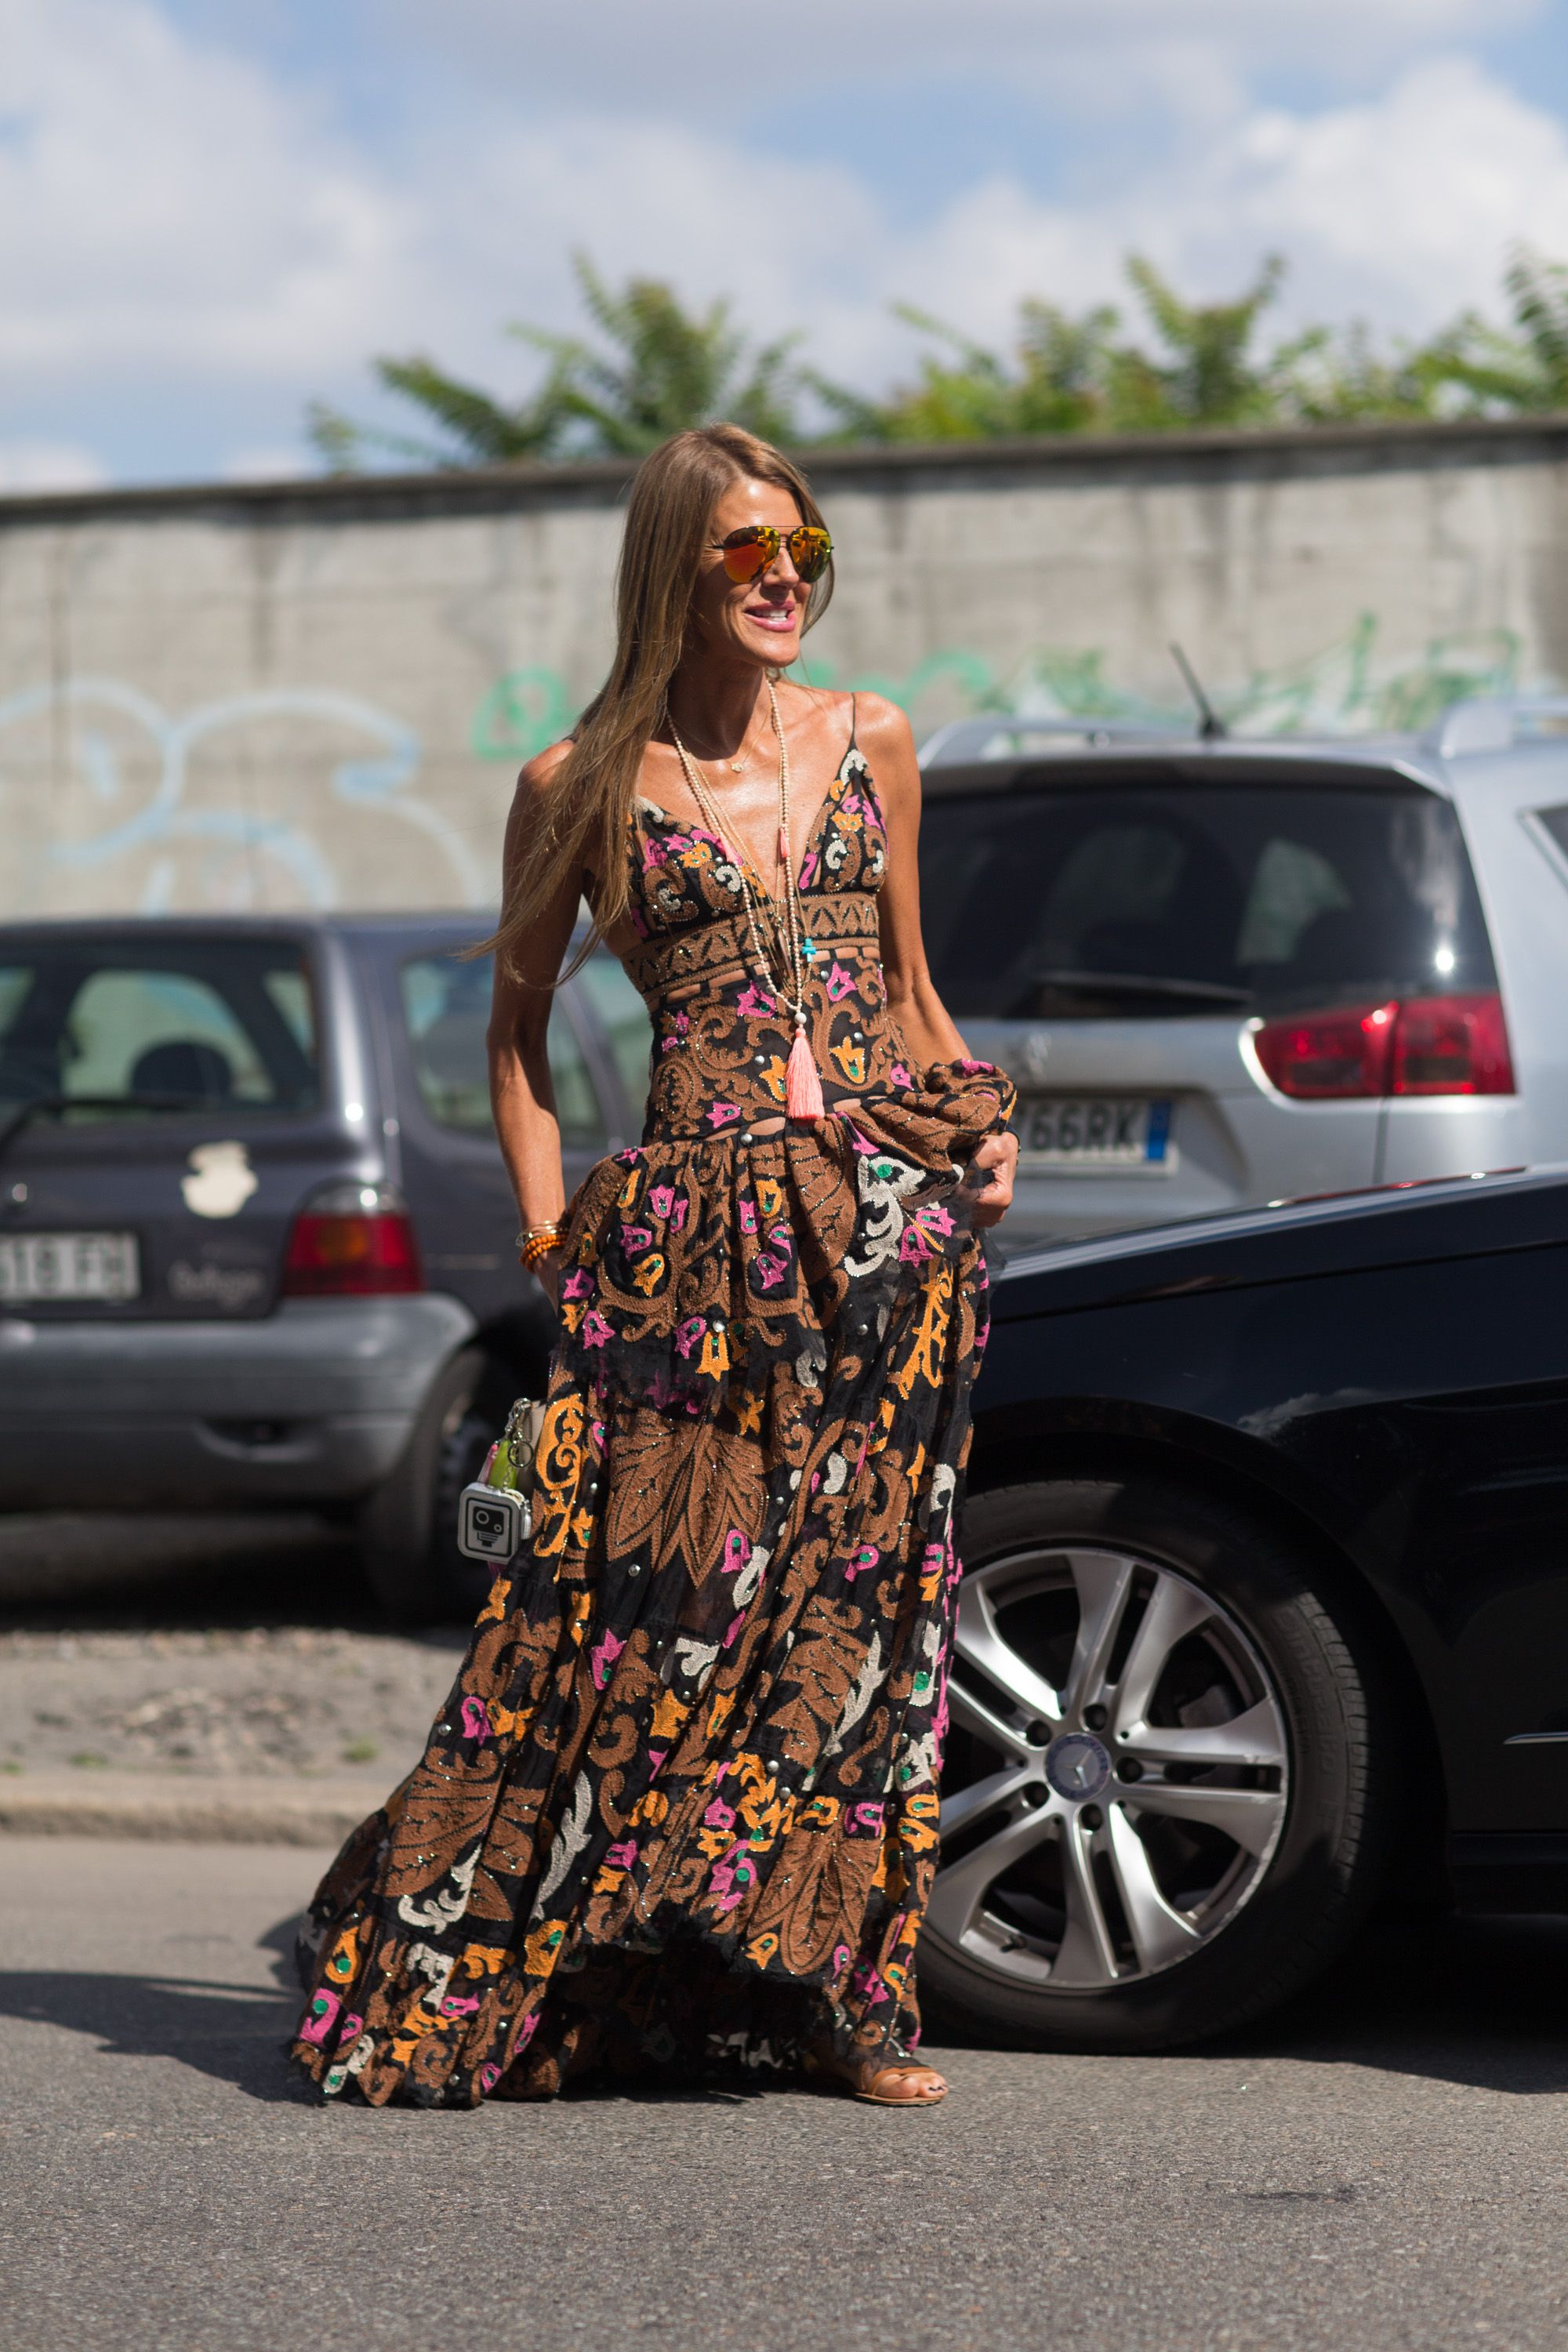 15 Non-Basic Ways to Wear Florals forSpring